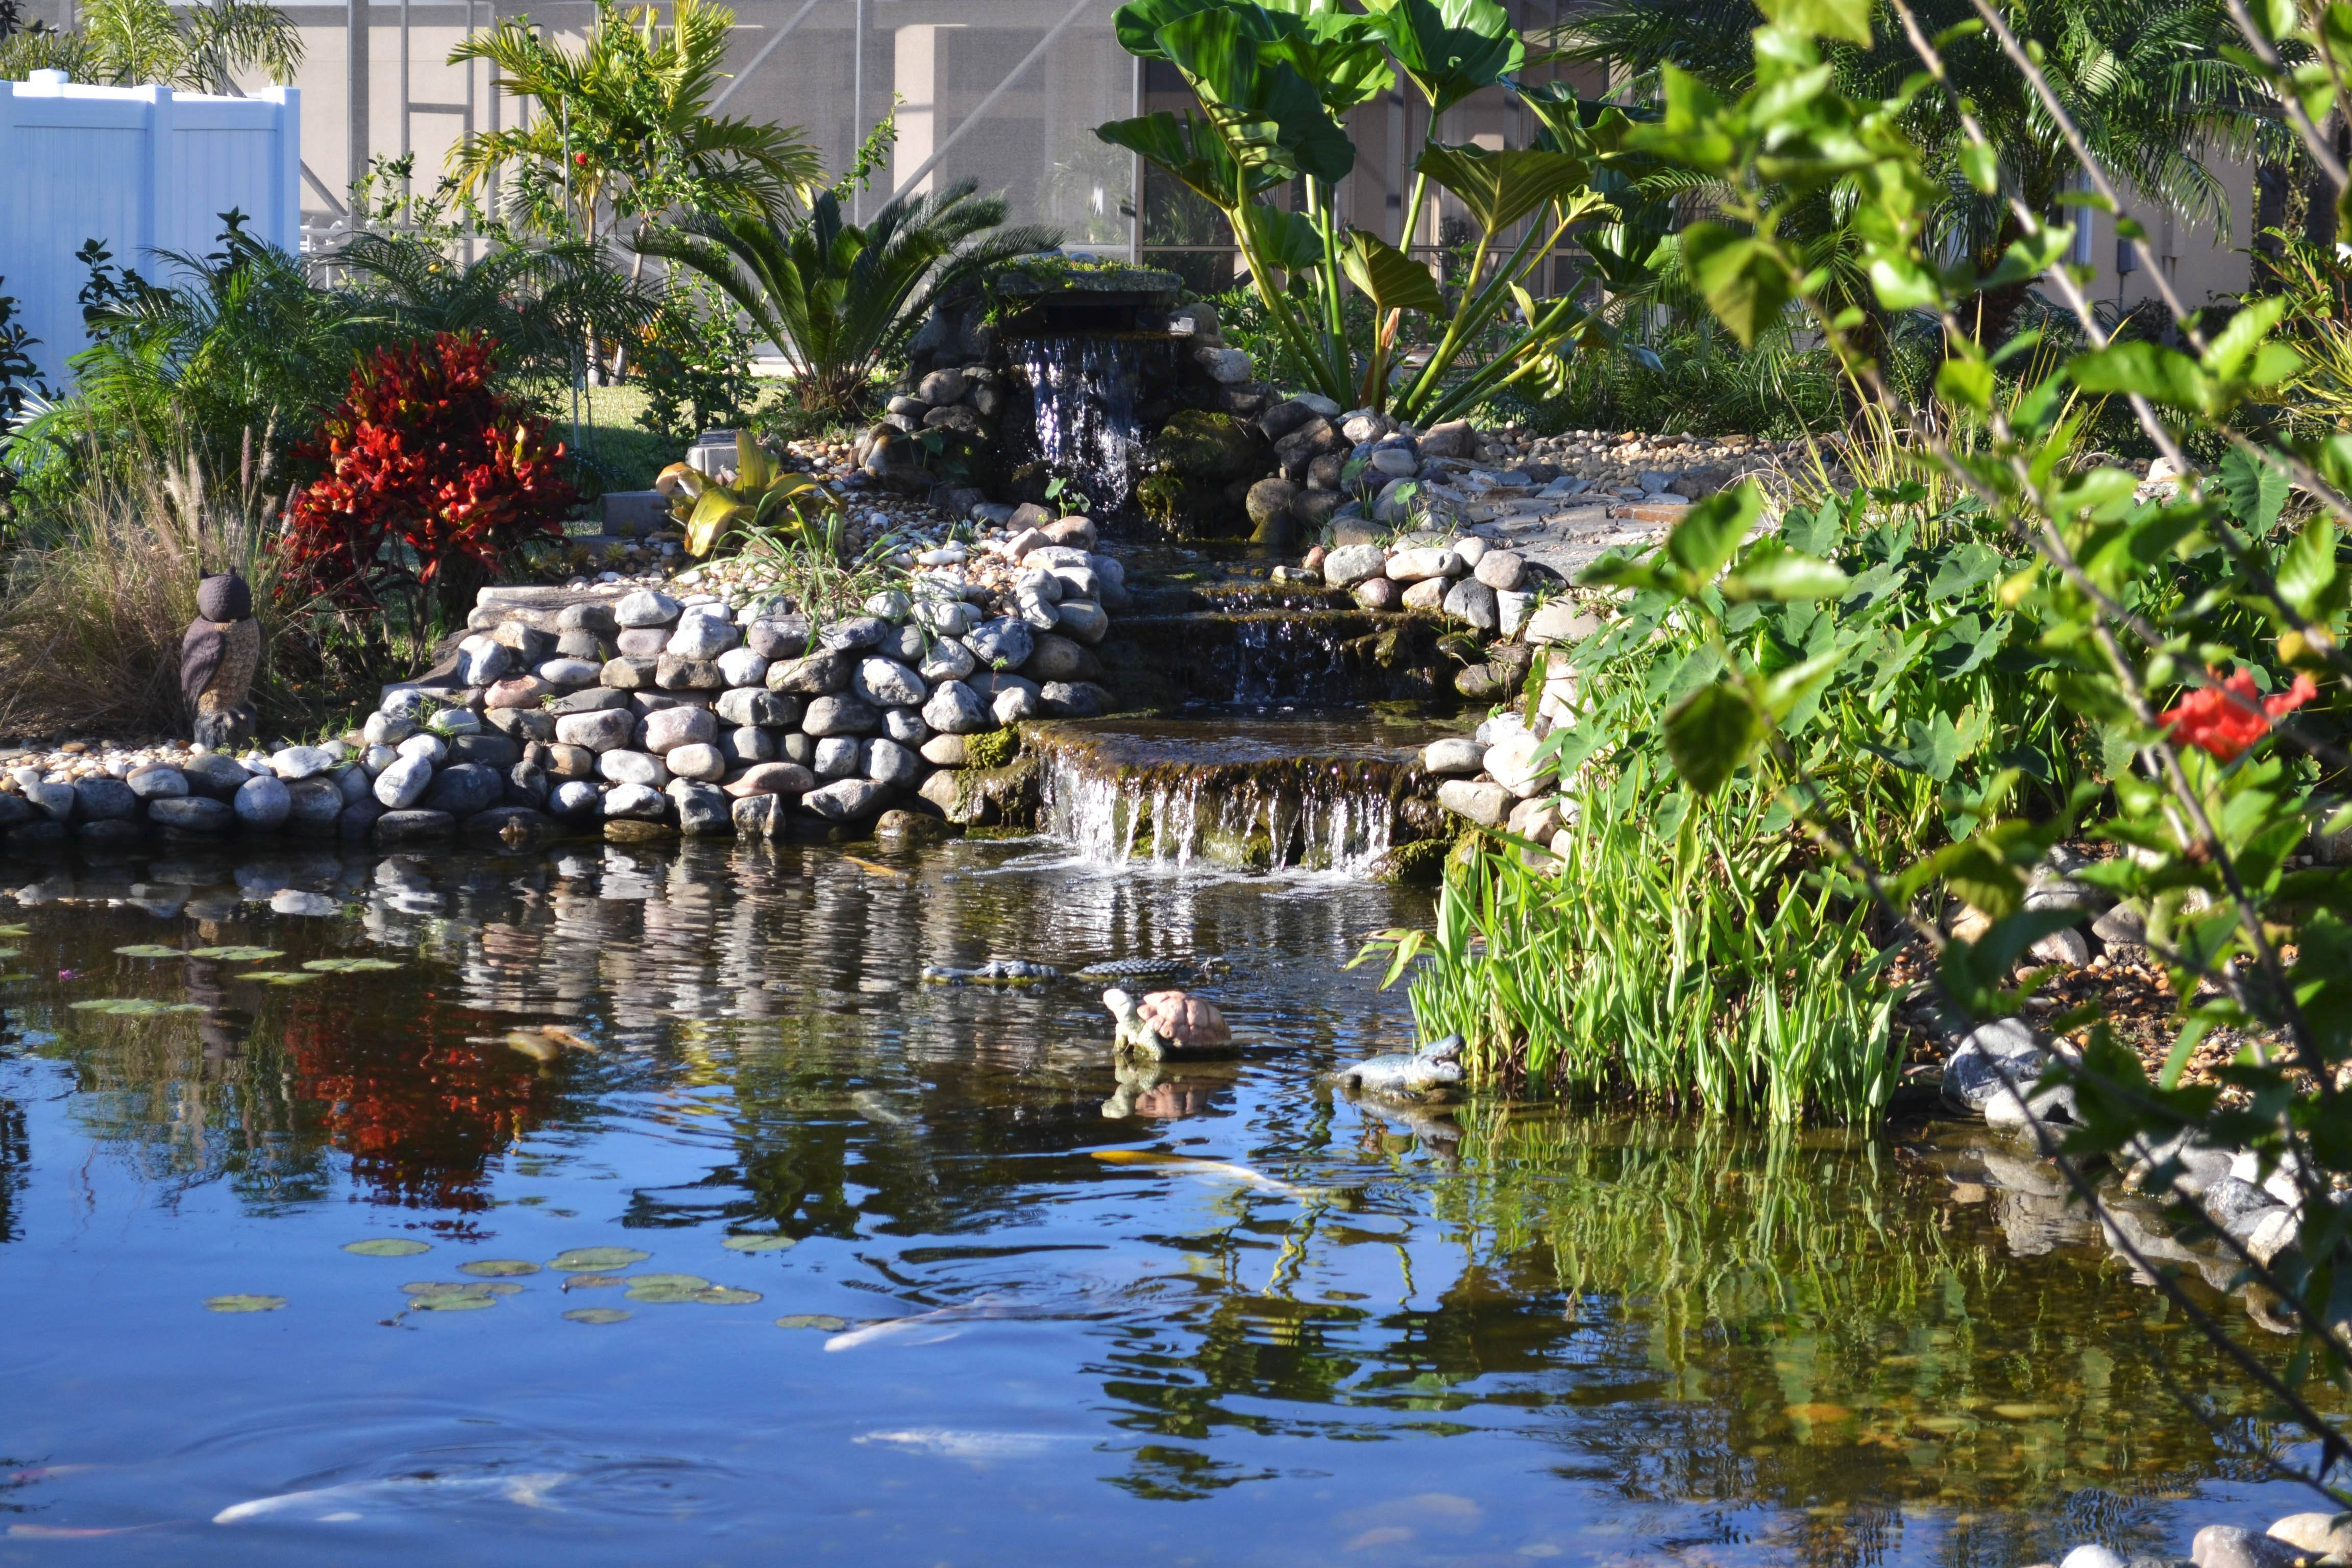 Fourteen koi fish call this Florida pond home. Backyard ponds, which range from small and simple to meandering and ornate, can become a passion for many gardeners.